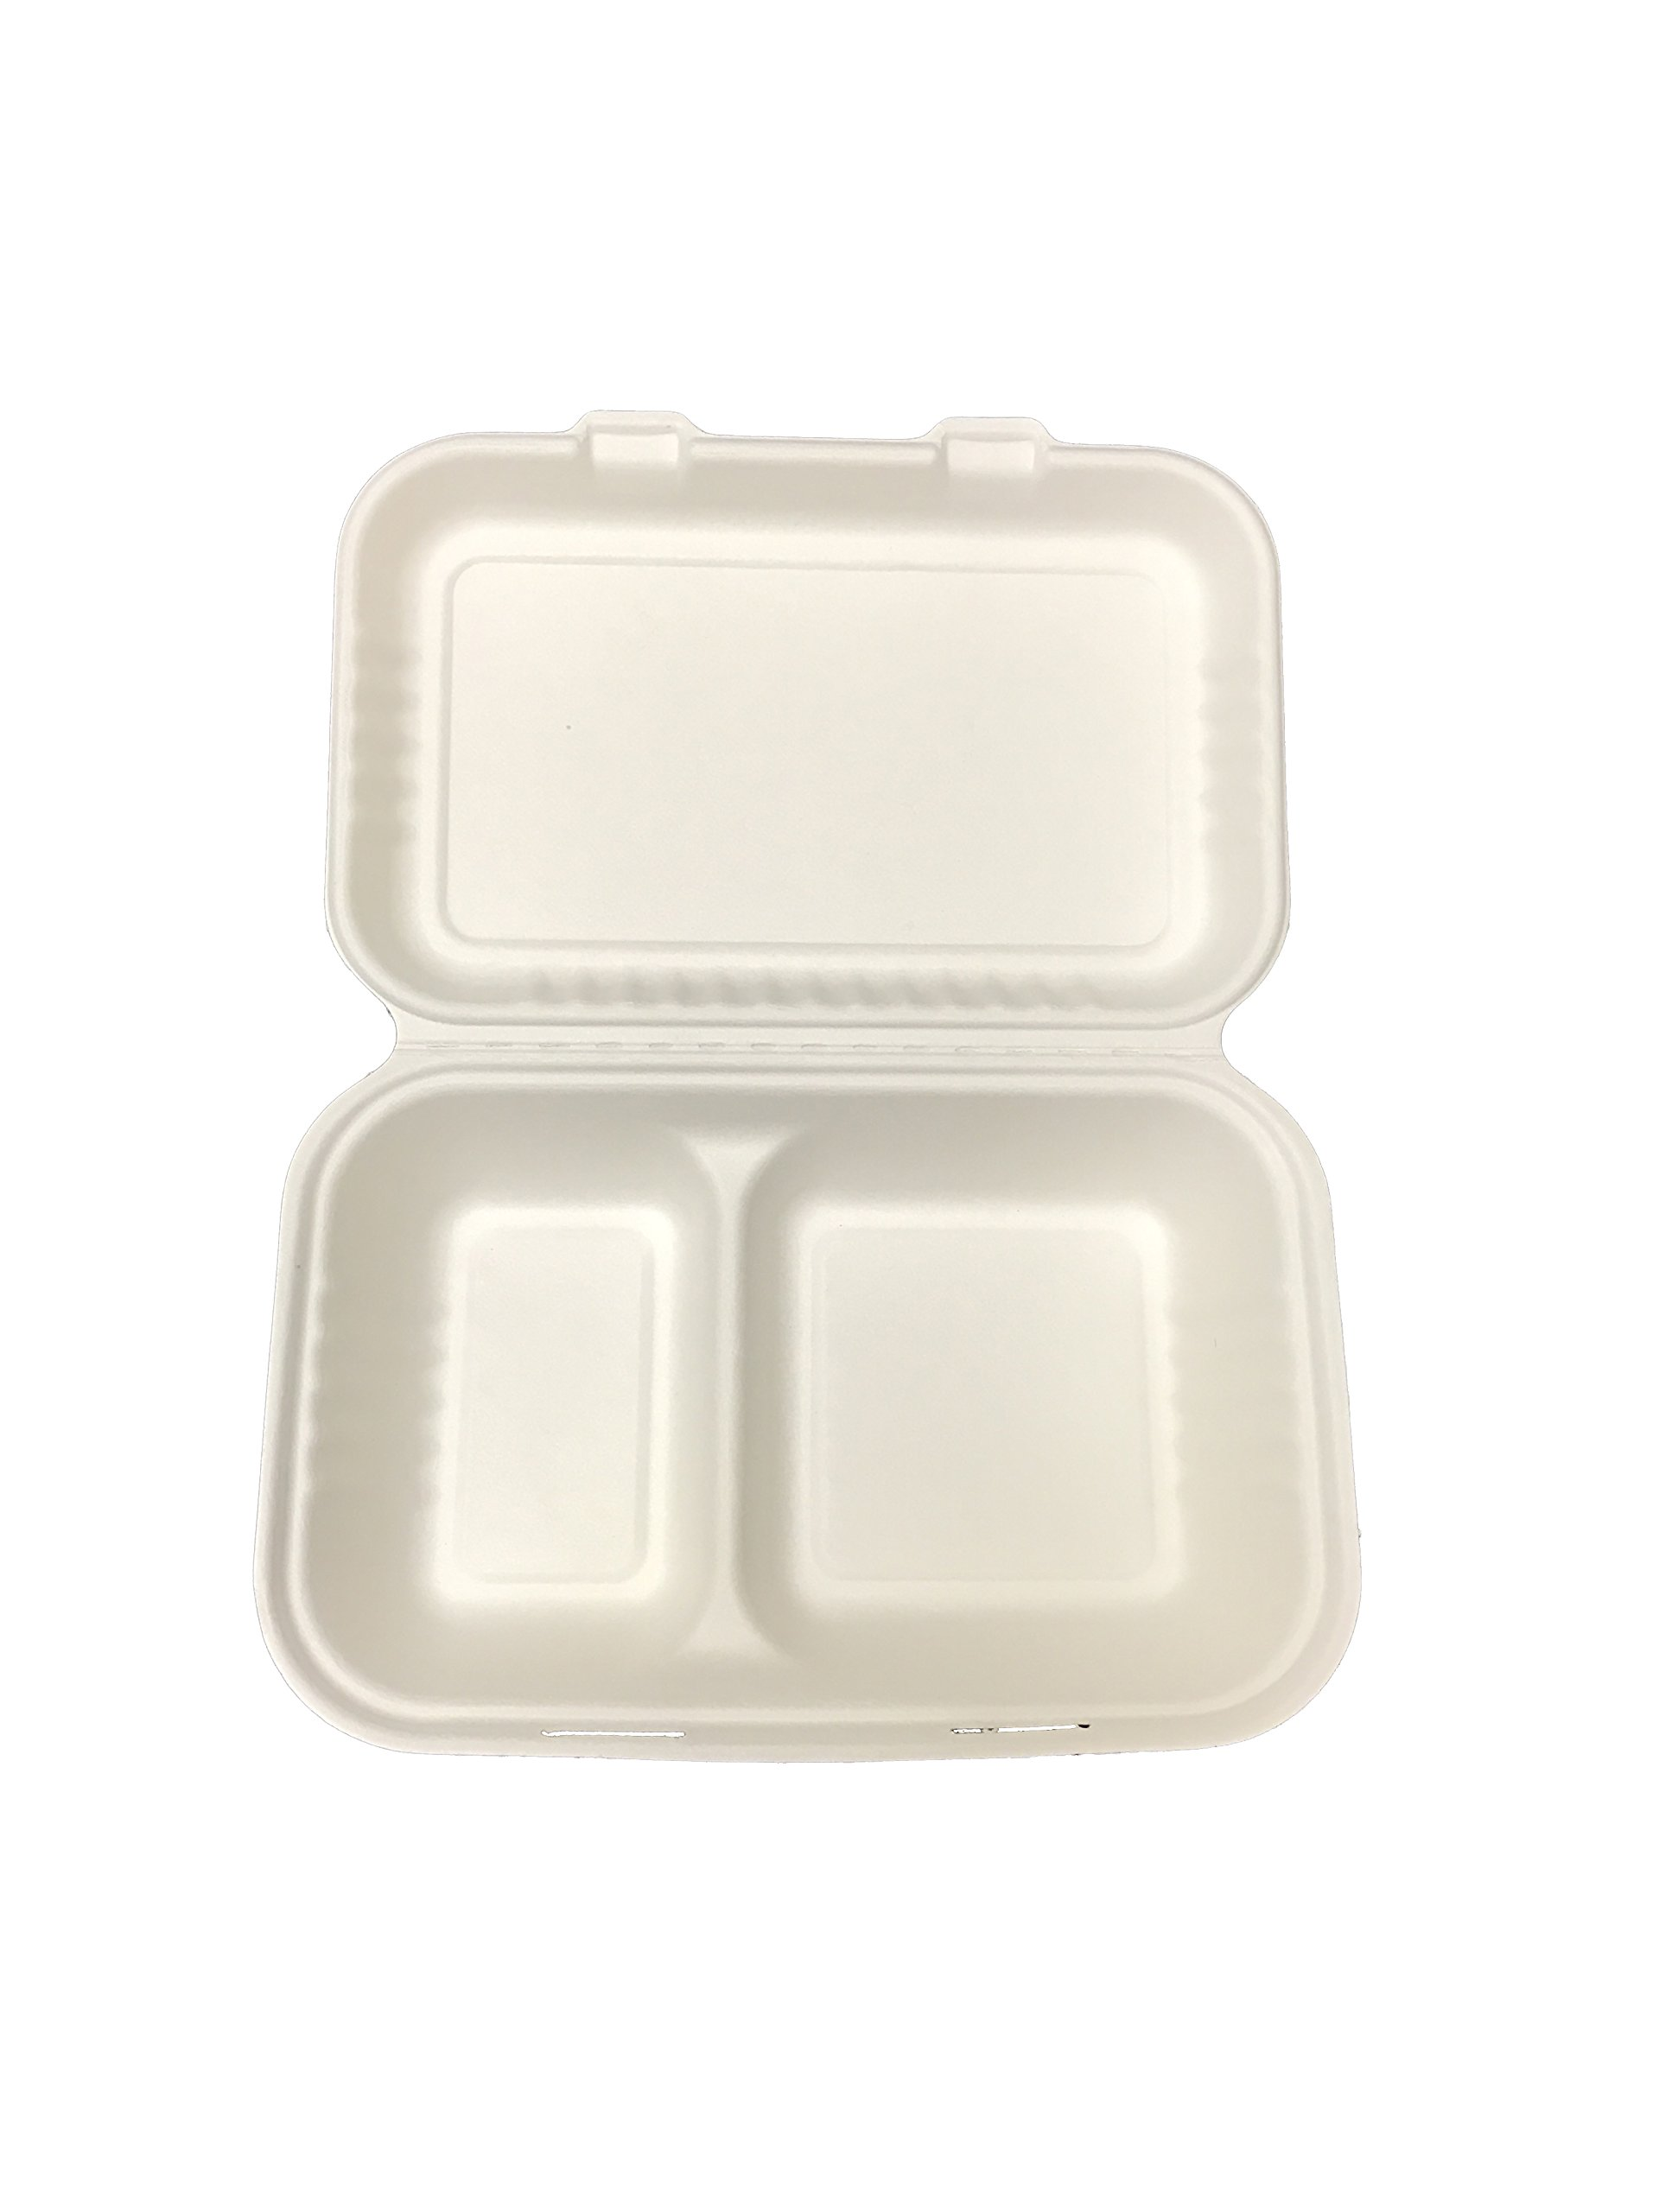 Primeware Bagasse Hinged Lid Container - 2-Section 9 x 6'' - 250/Cs (2 x 125), Not Applicable